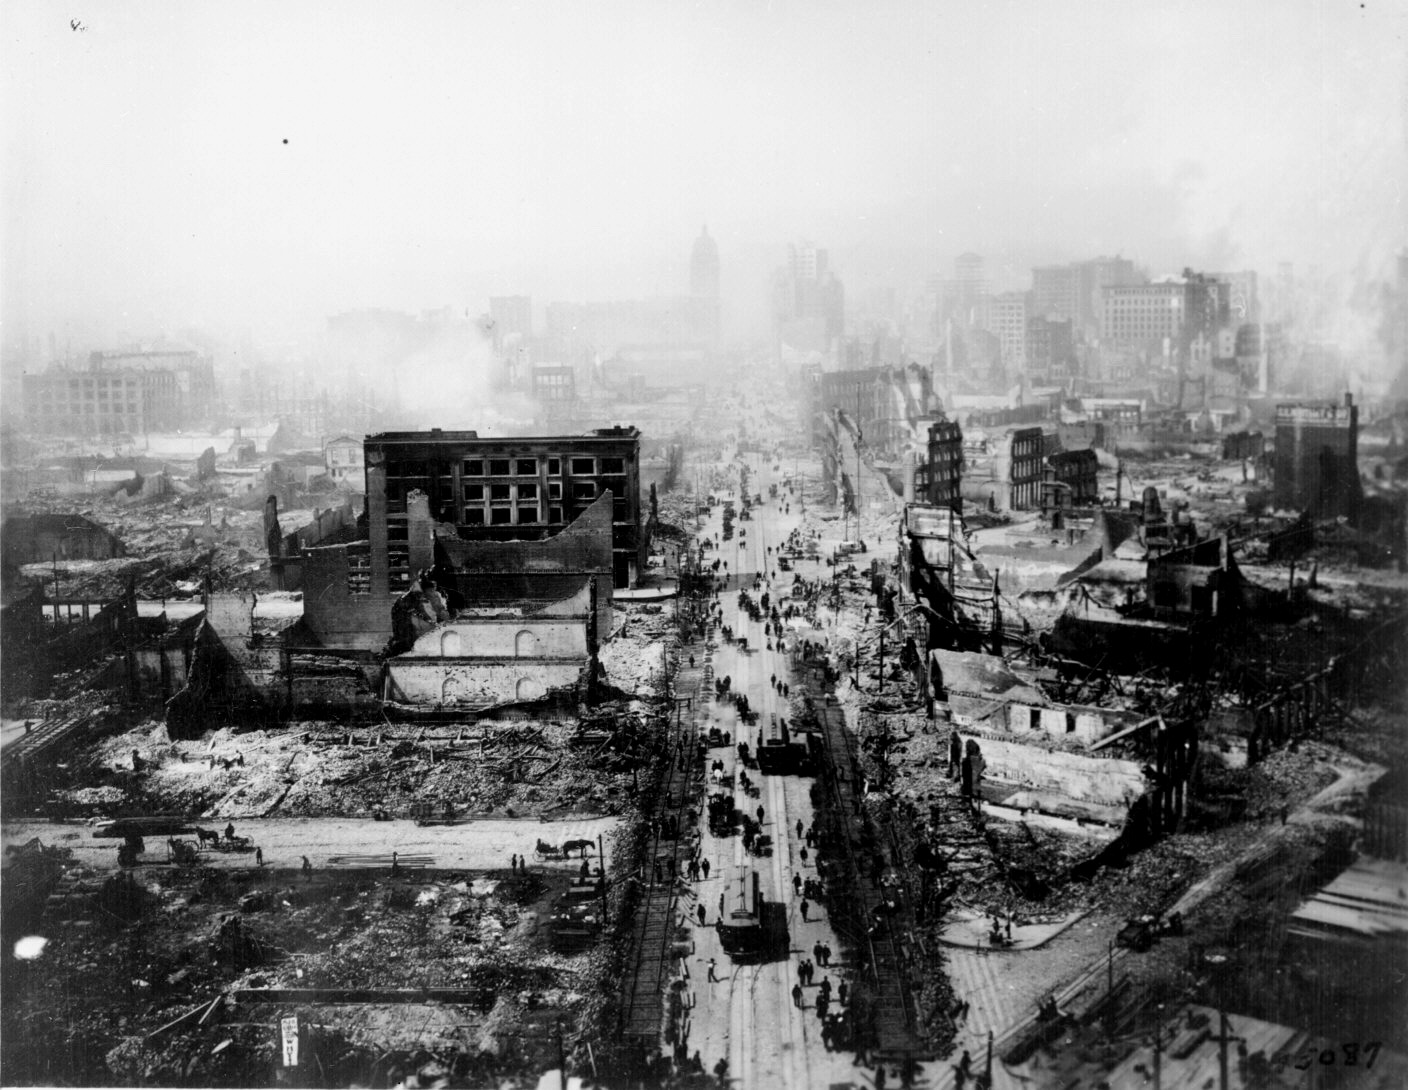 File:San francisco 1906 earthquake.jpg